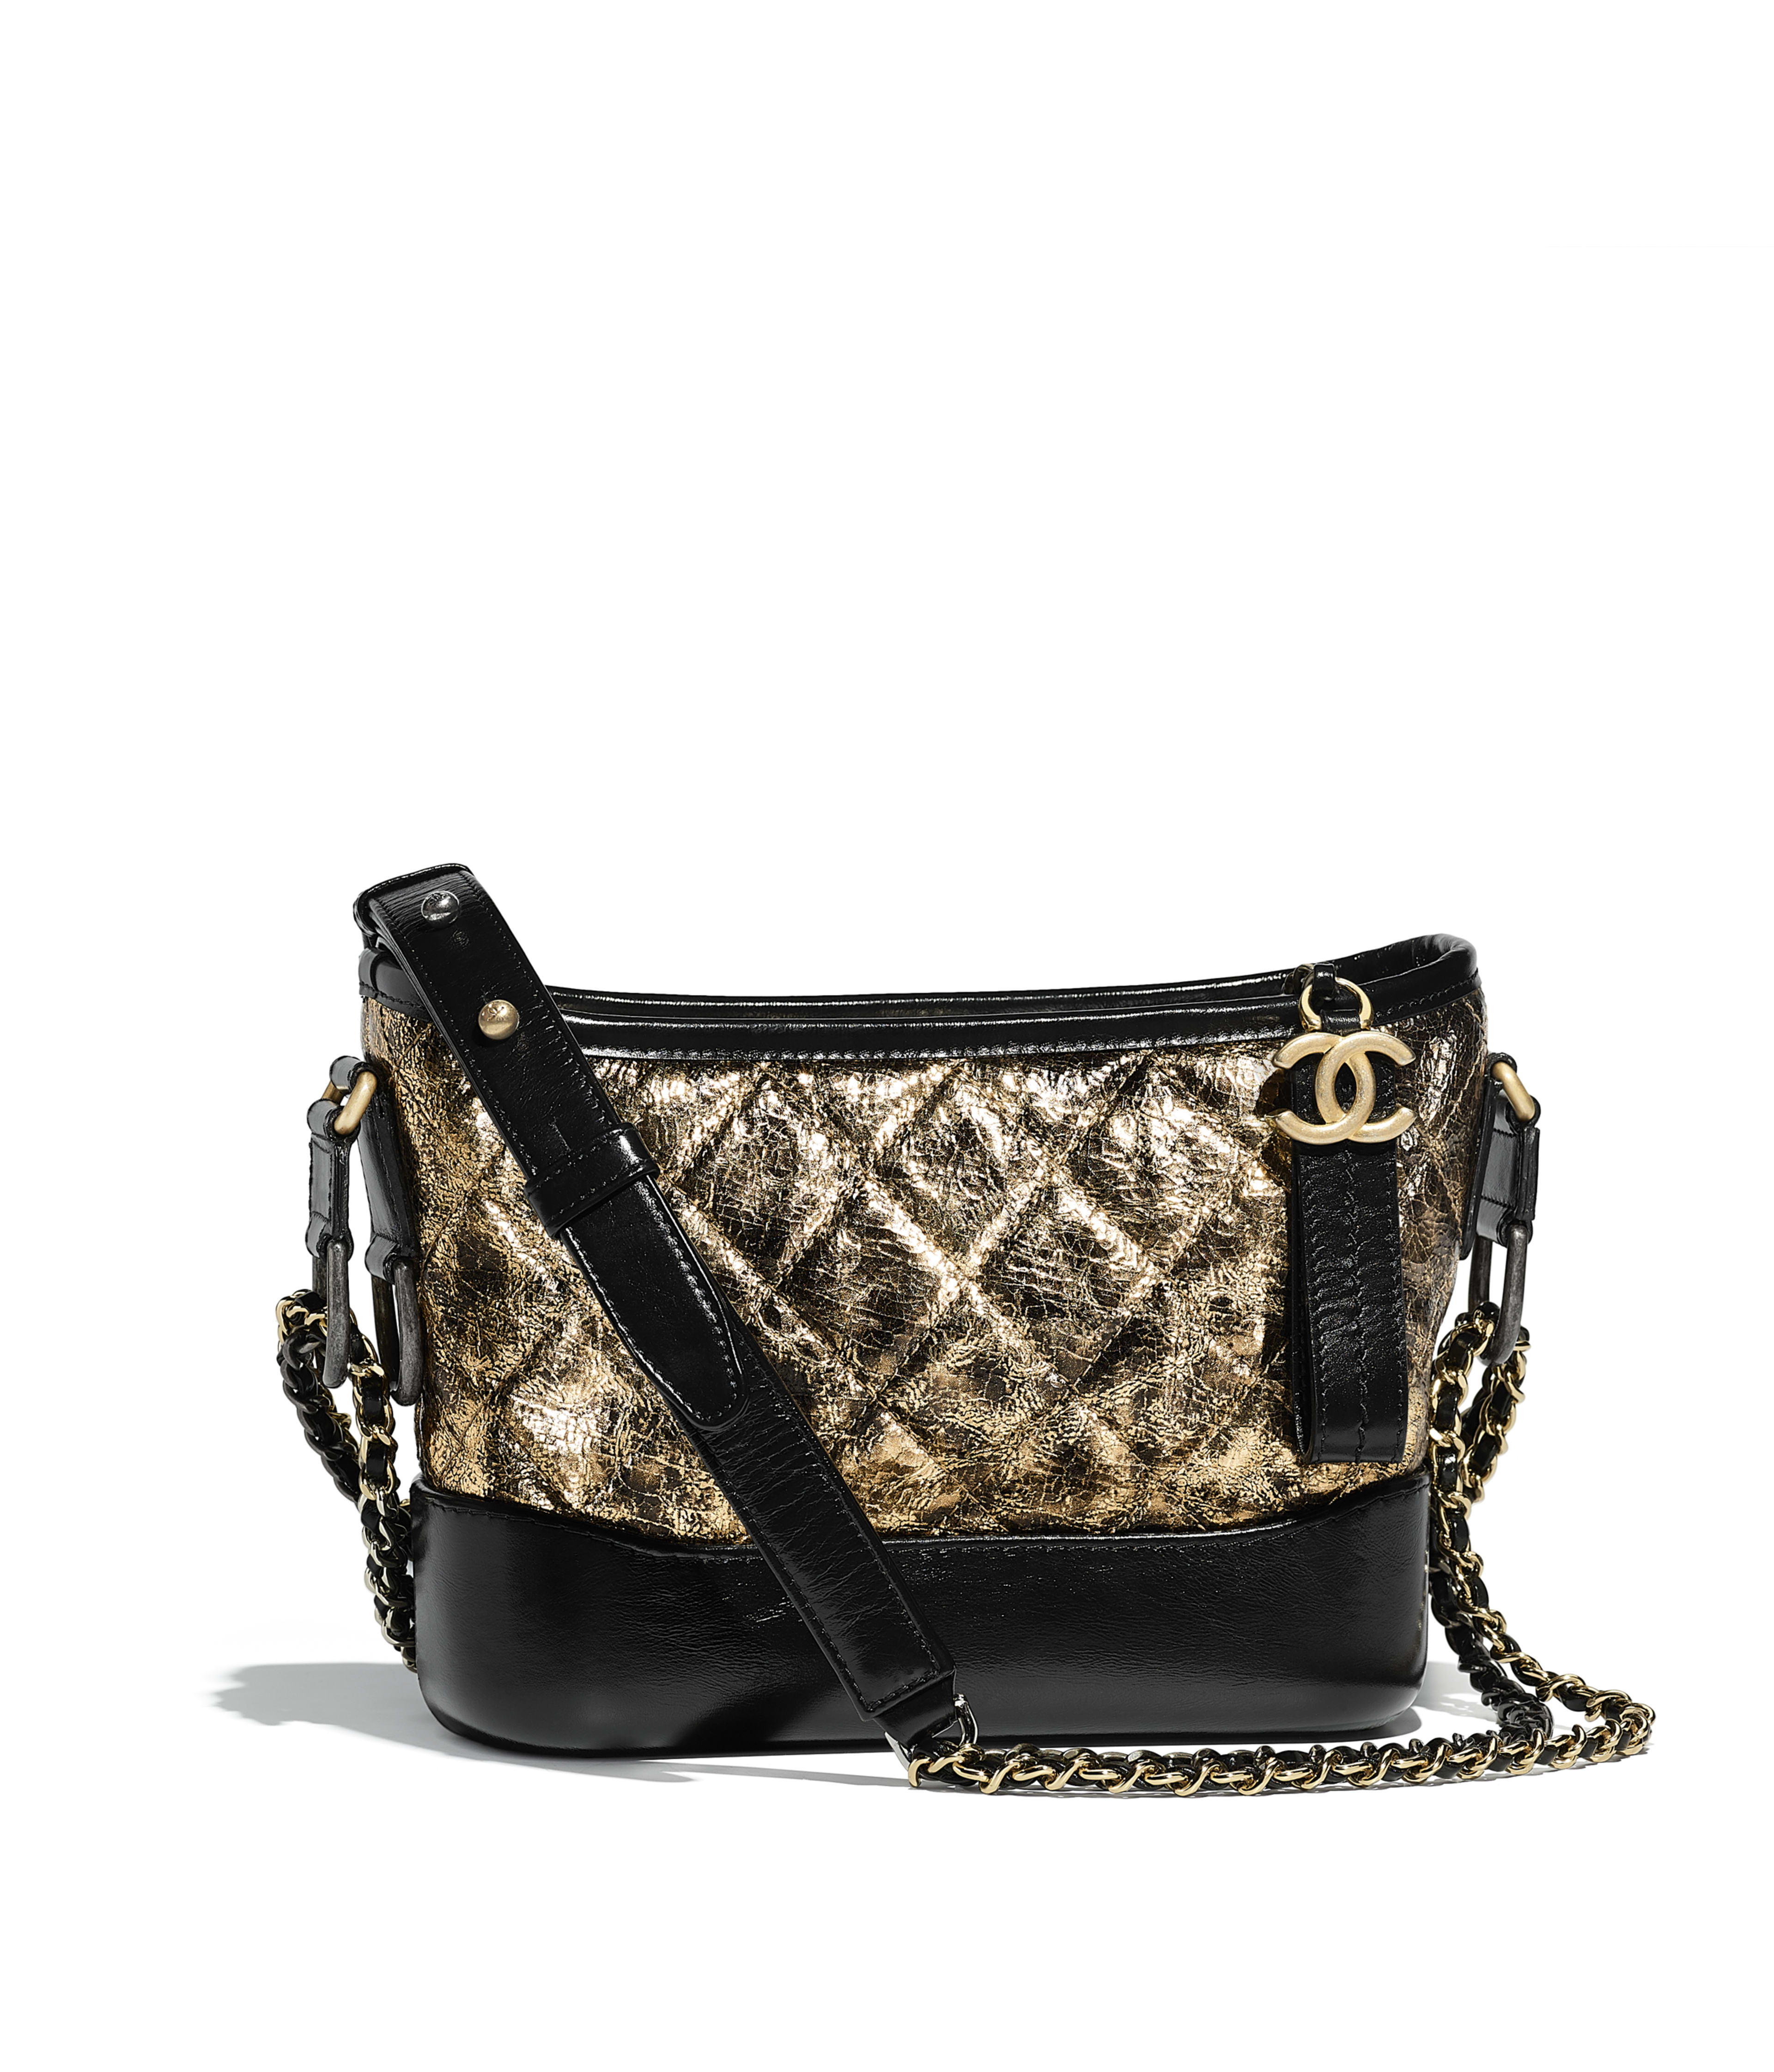 Chanel S Gabrielle Bag Handbags Chanel